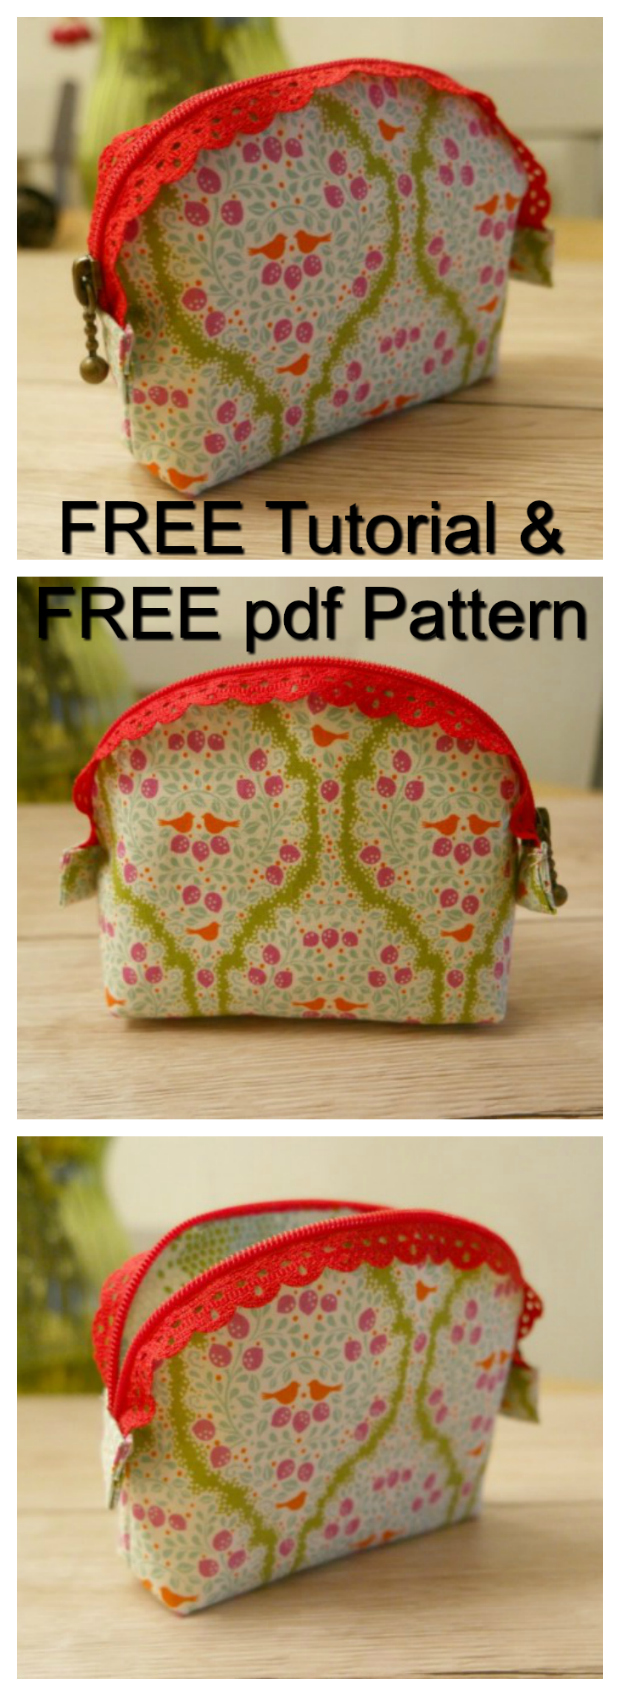 Here are a FREE tutorial and a FREE pdf pattern showing you how to make a little purse featuring a lace zip - The Easy Lace Zip Purse. Lace zips are an awesome idea and they create a real feature on your purse. Even better, if you are one of those sewers who really struggle with normal zippers, then you'll find sewing on a lace zipper much easier. The outer, lining and interfacing are all cut from the same pattern piece. The flat bottom is achieved by sewing boxed corners and the zipper is sewn on last.